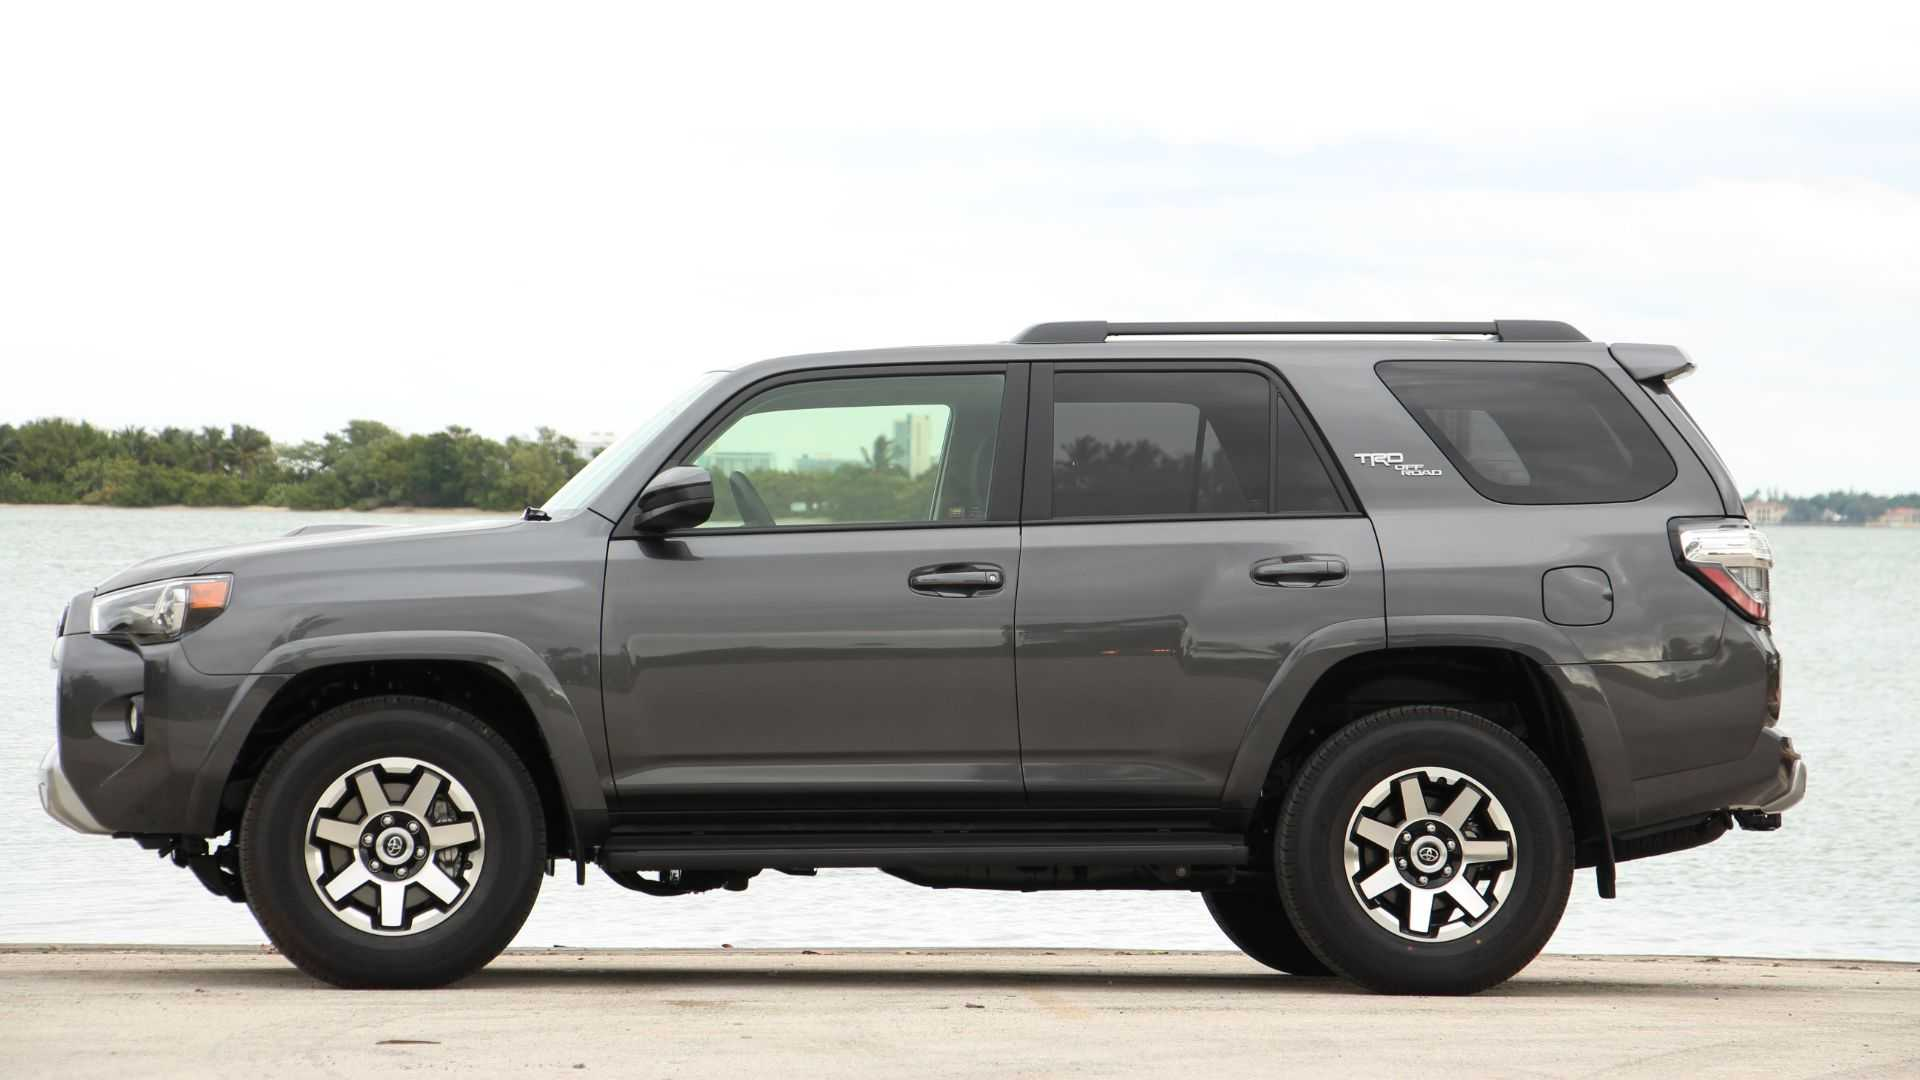 32 Best 2019 Toyota Off Road Images